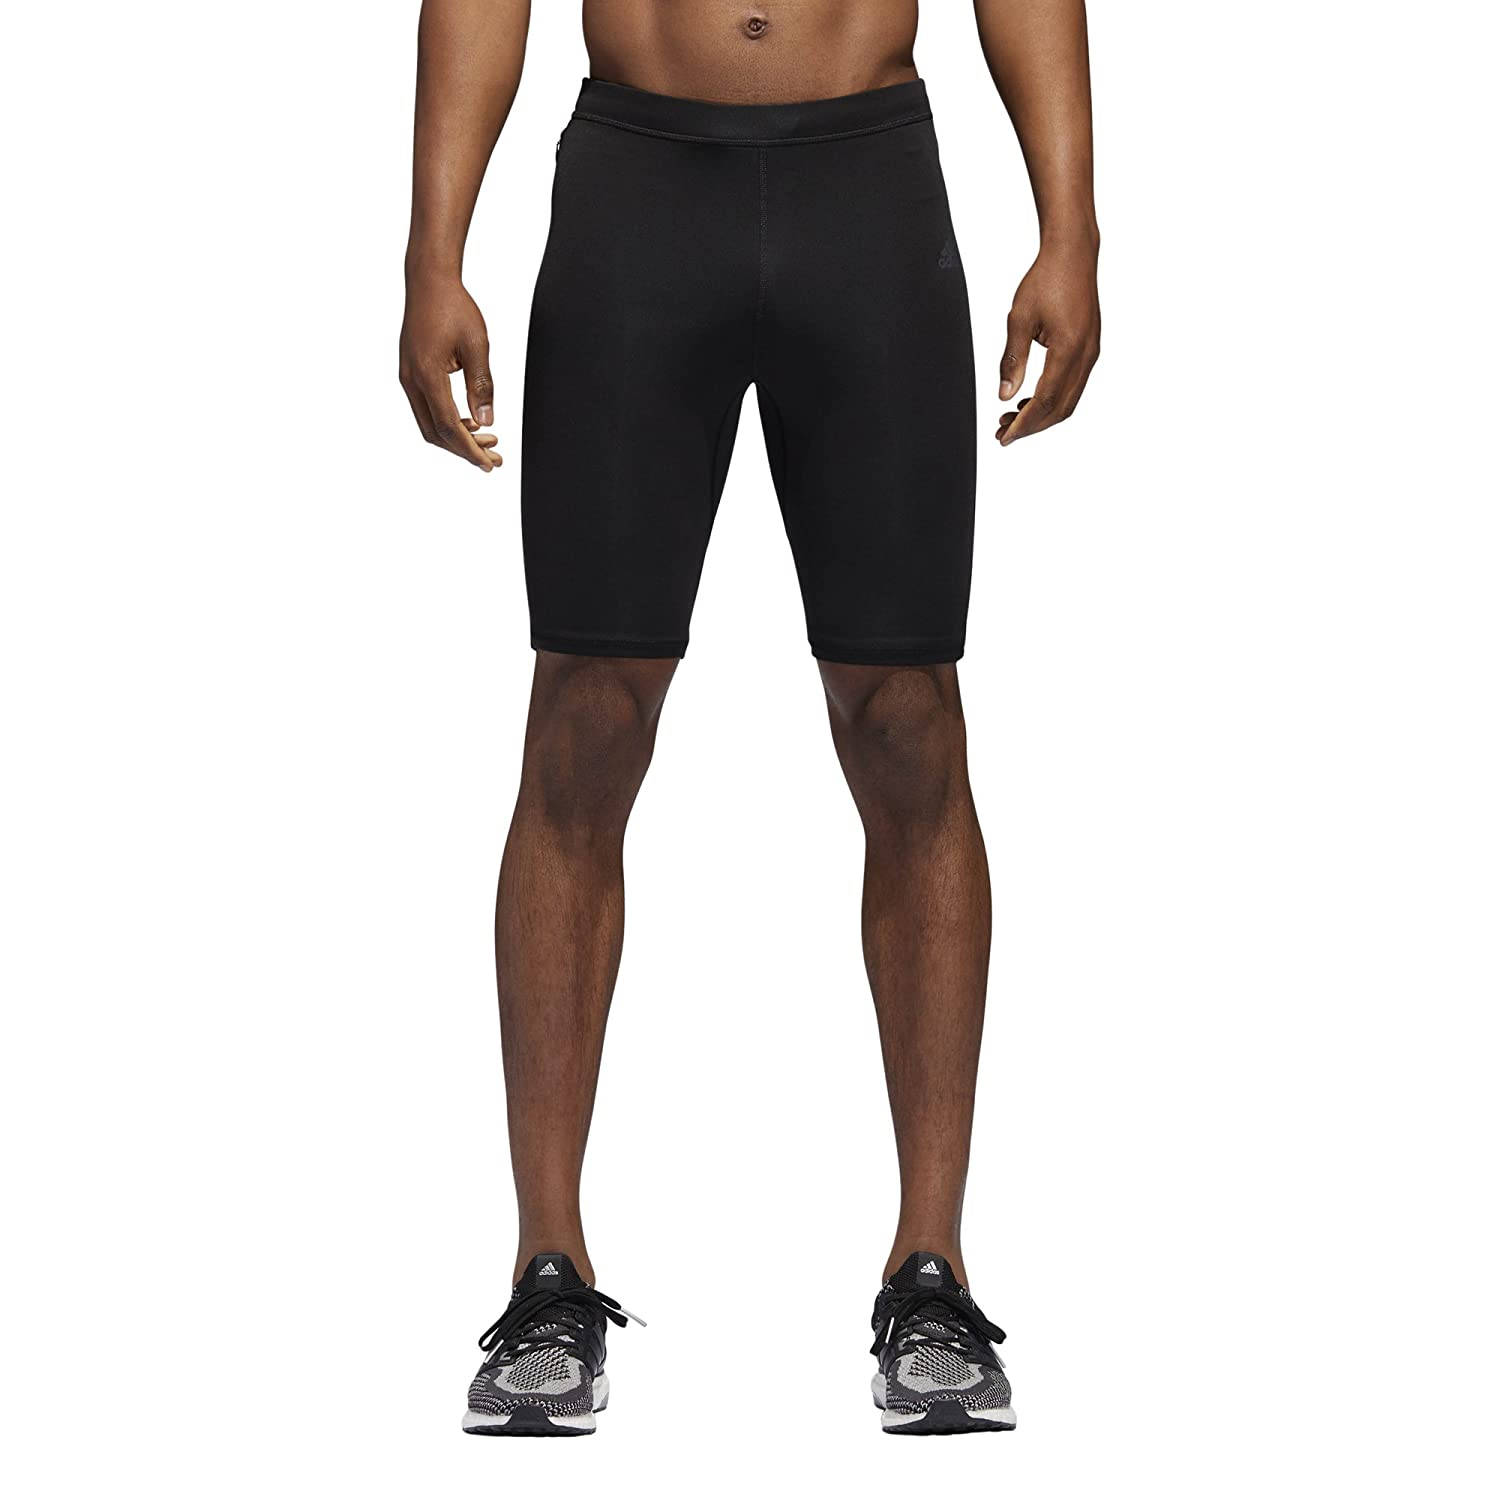 Adidas Men's Response Short Tights